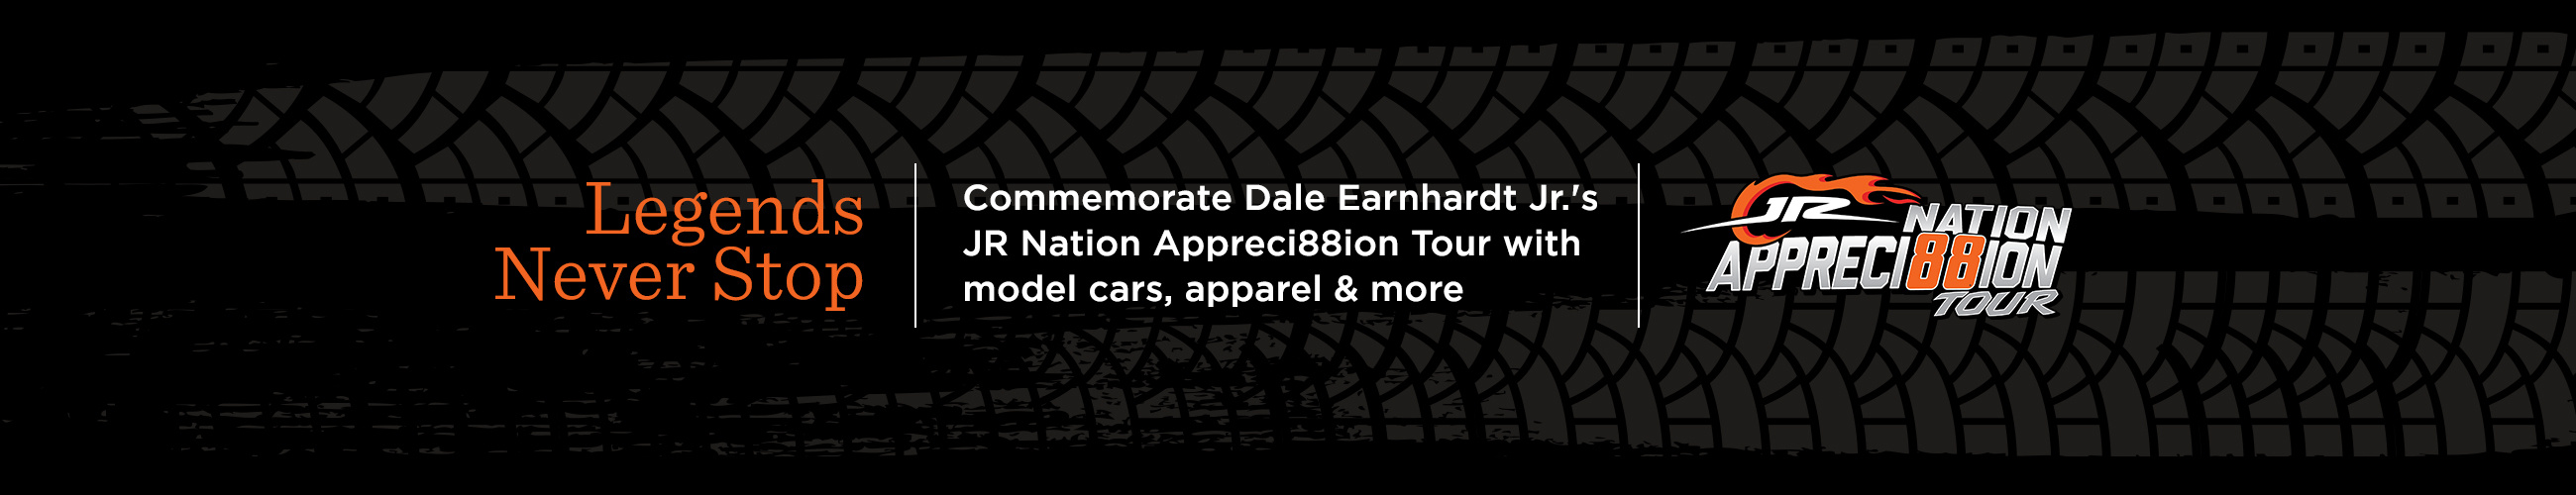 Legends Never Stop. Commemorate Dale Earnhardt Jr.'s JR Nation Appreci88ion Tour with model cars, apparel & more